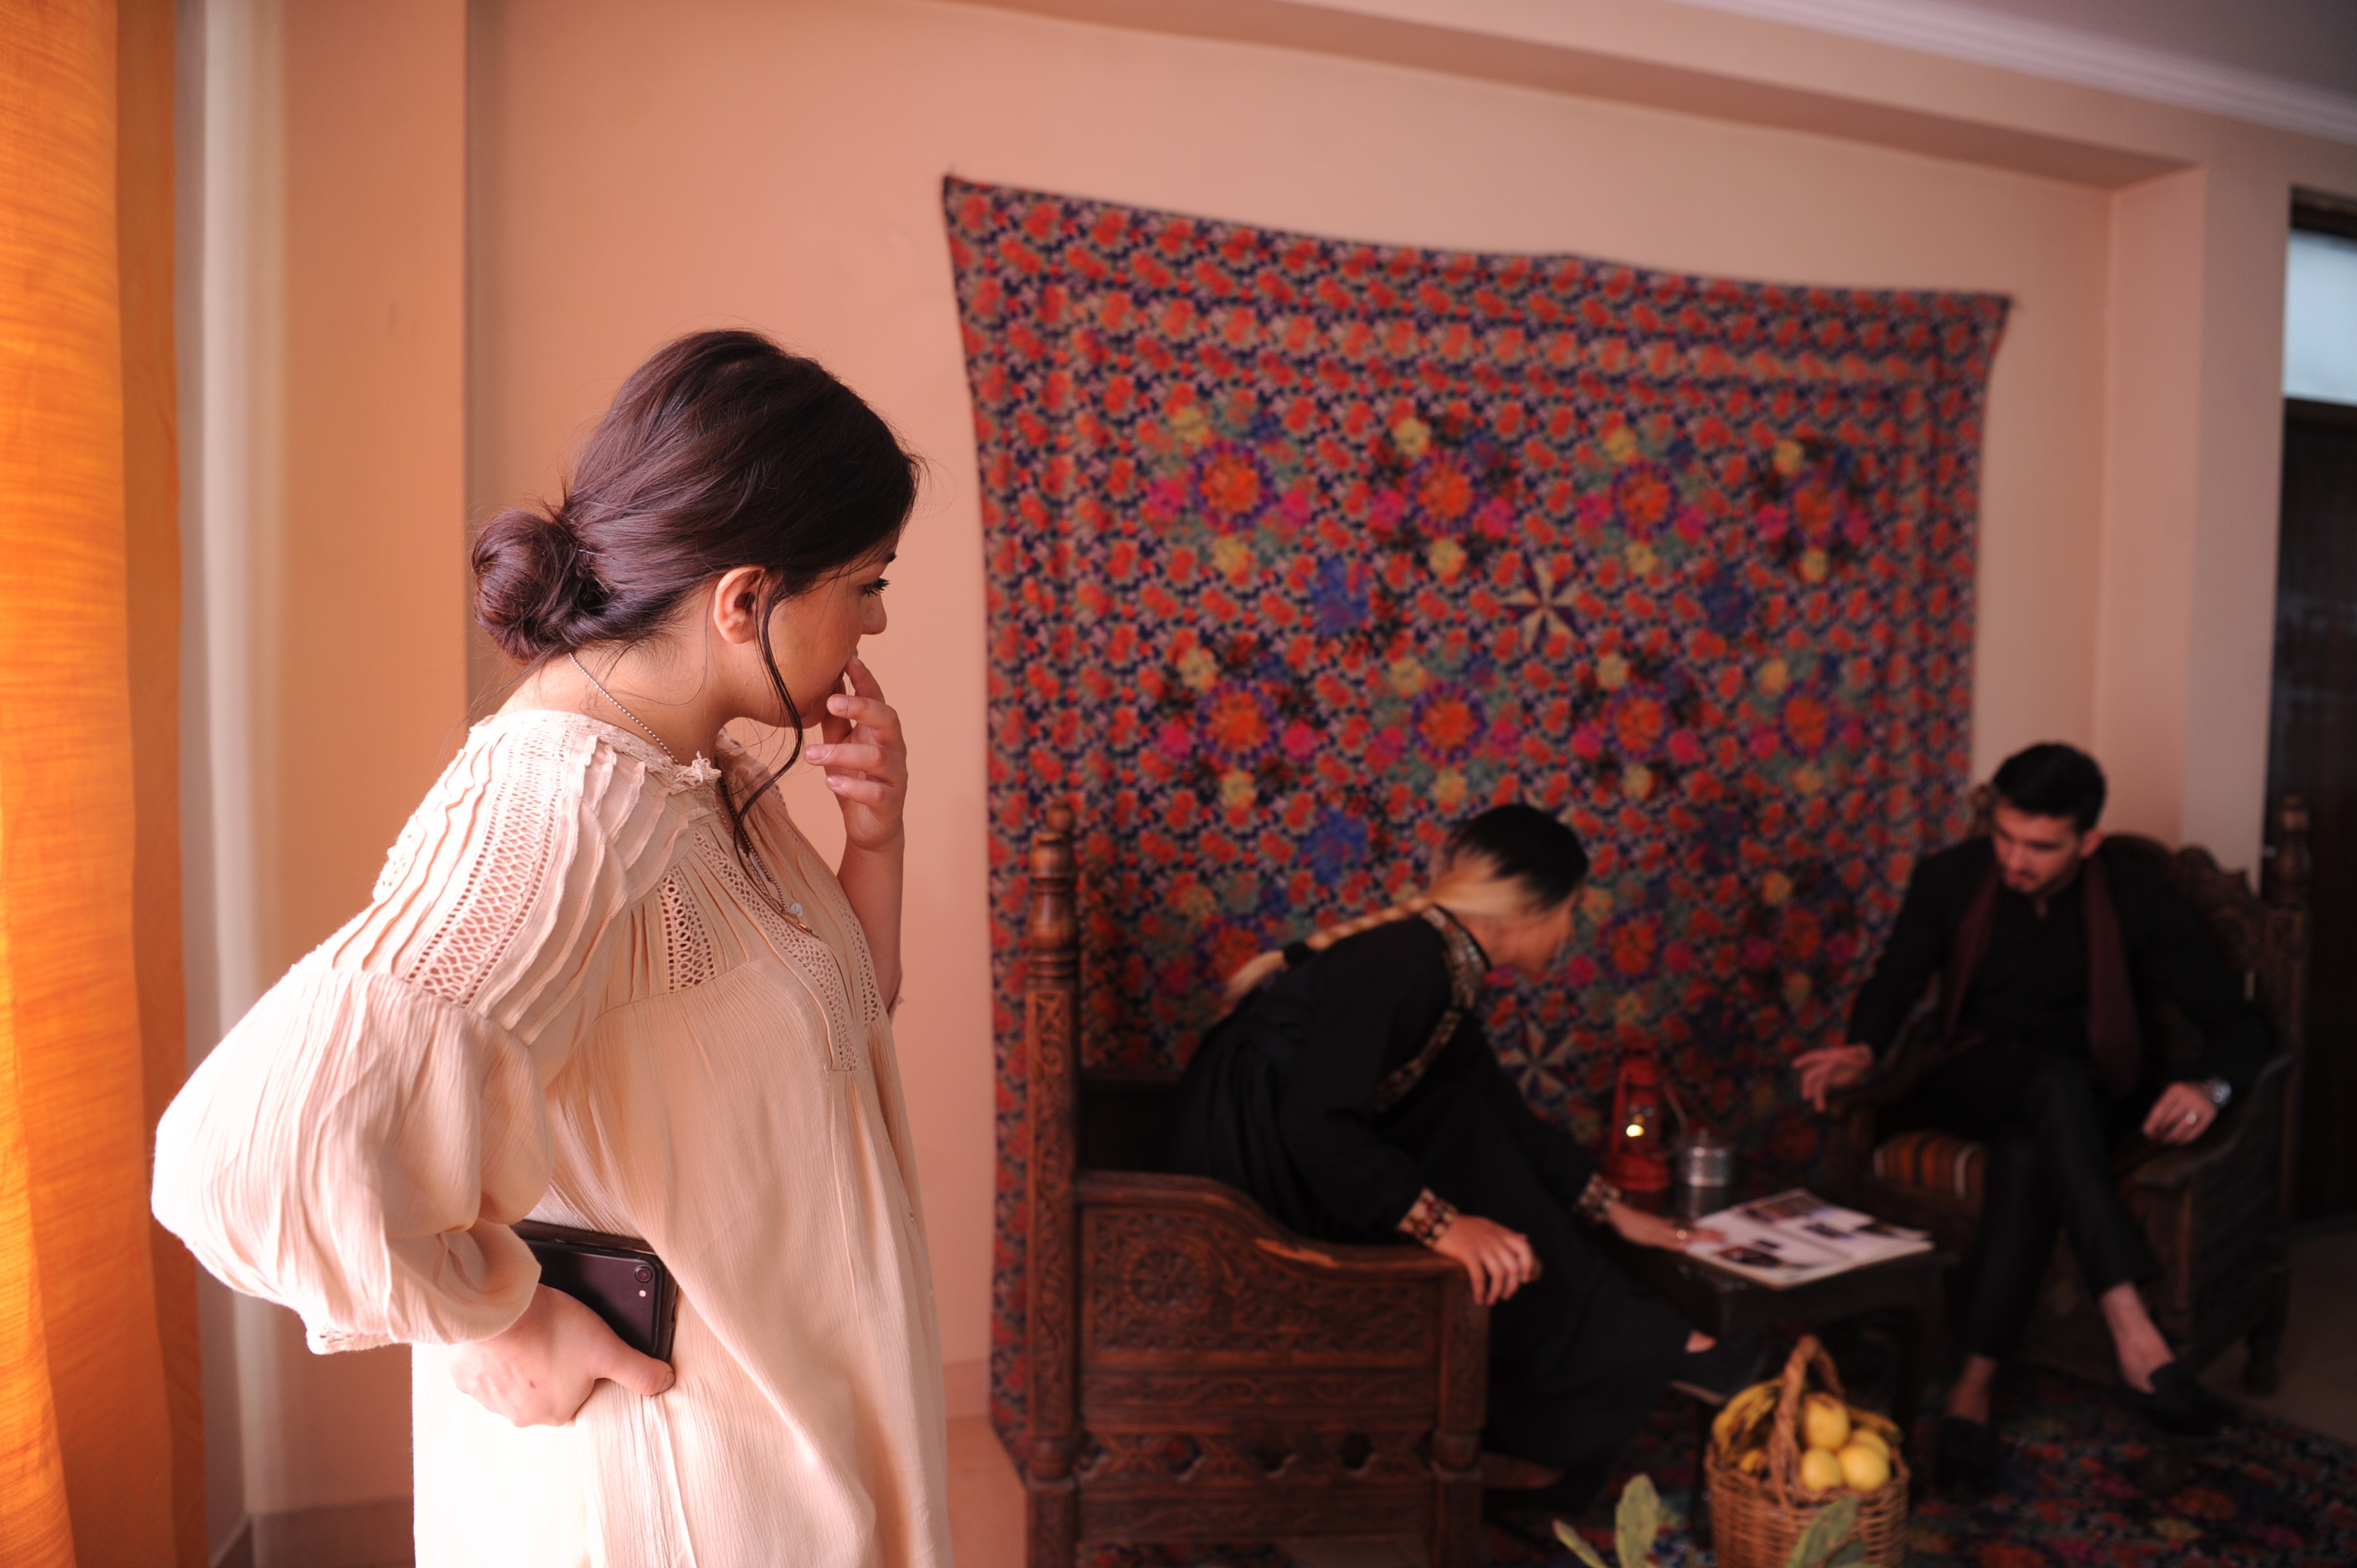 Fashion designer Rahiba Rahimi at a photoshoot for her label Laman.